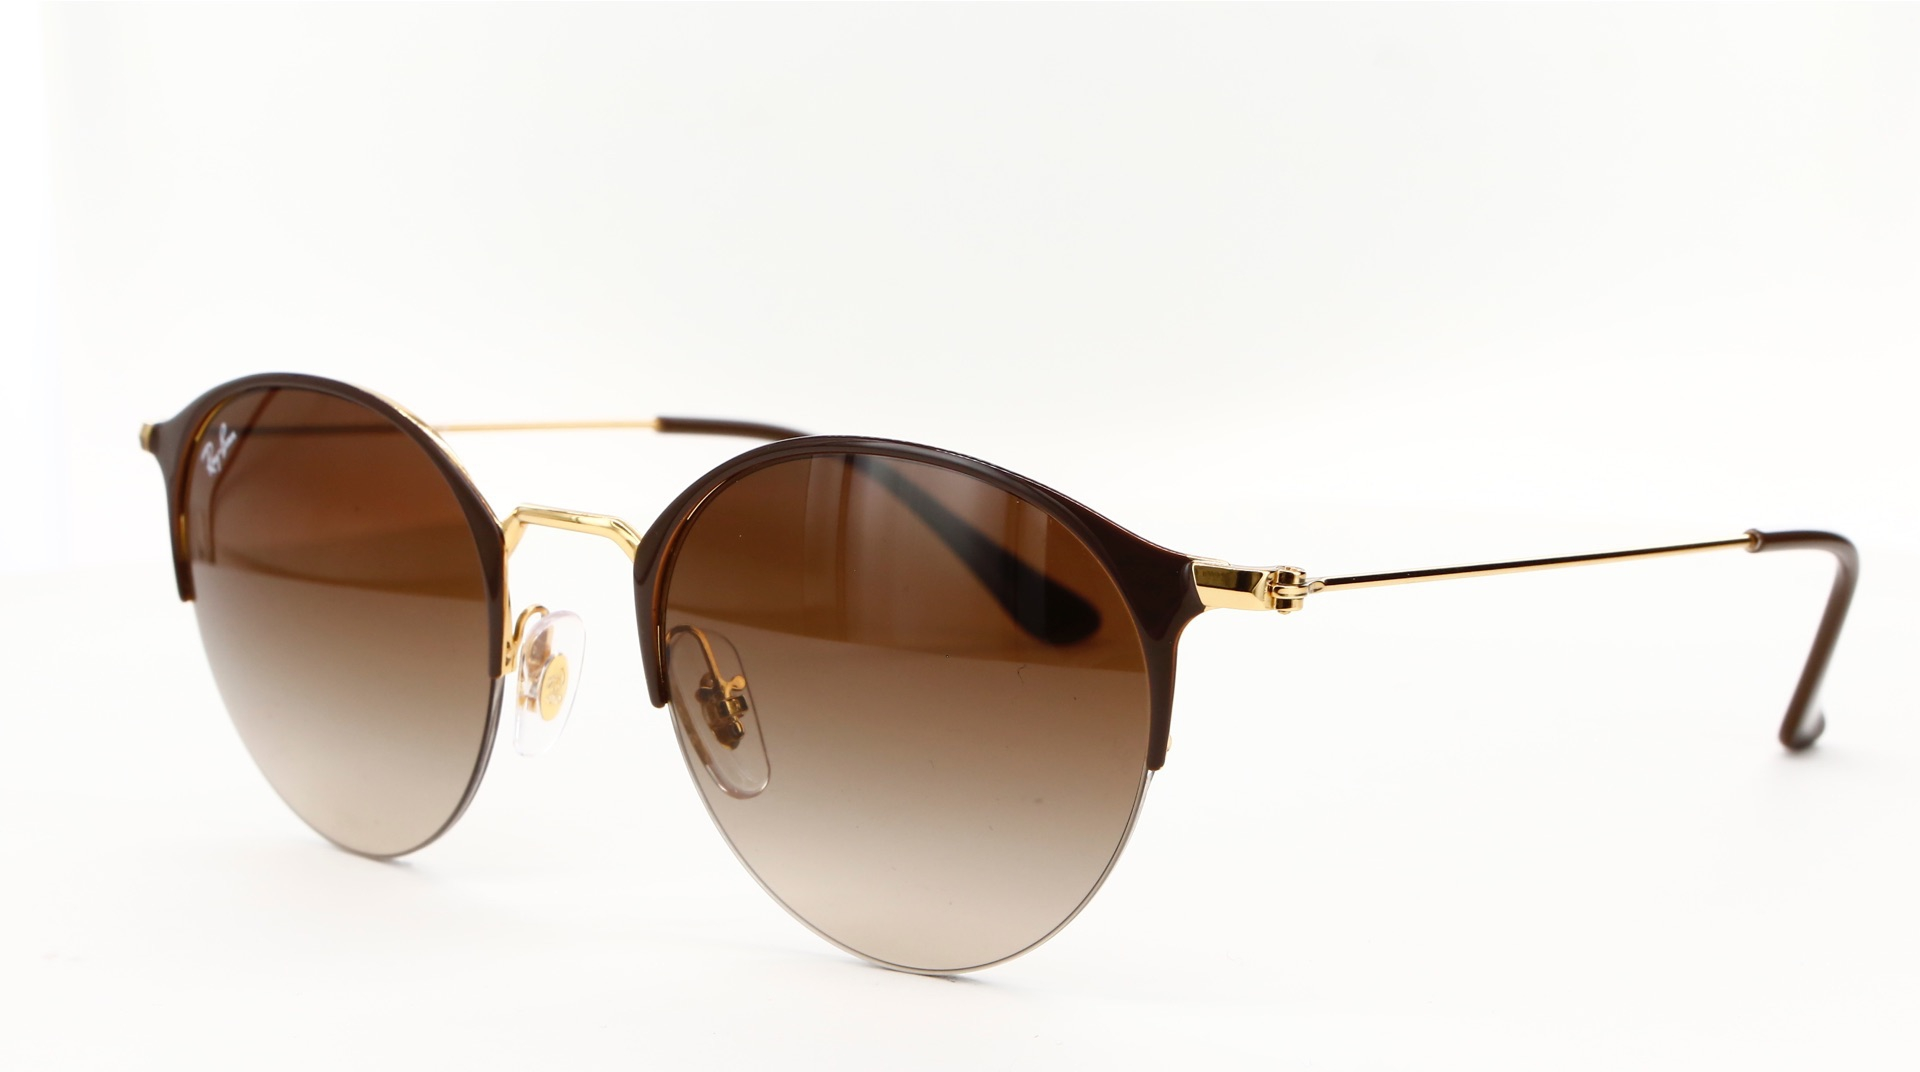 Ray-Ban - ref: 79090